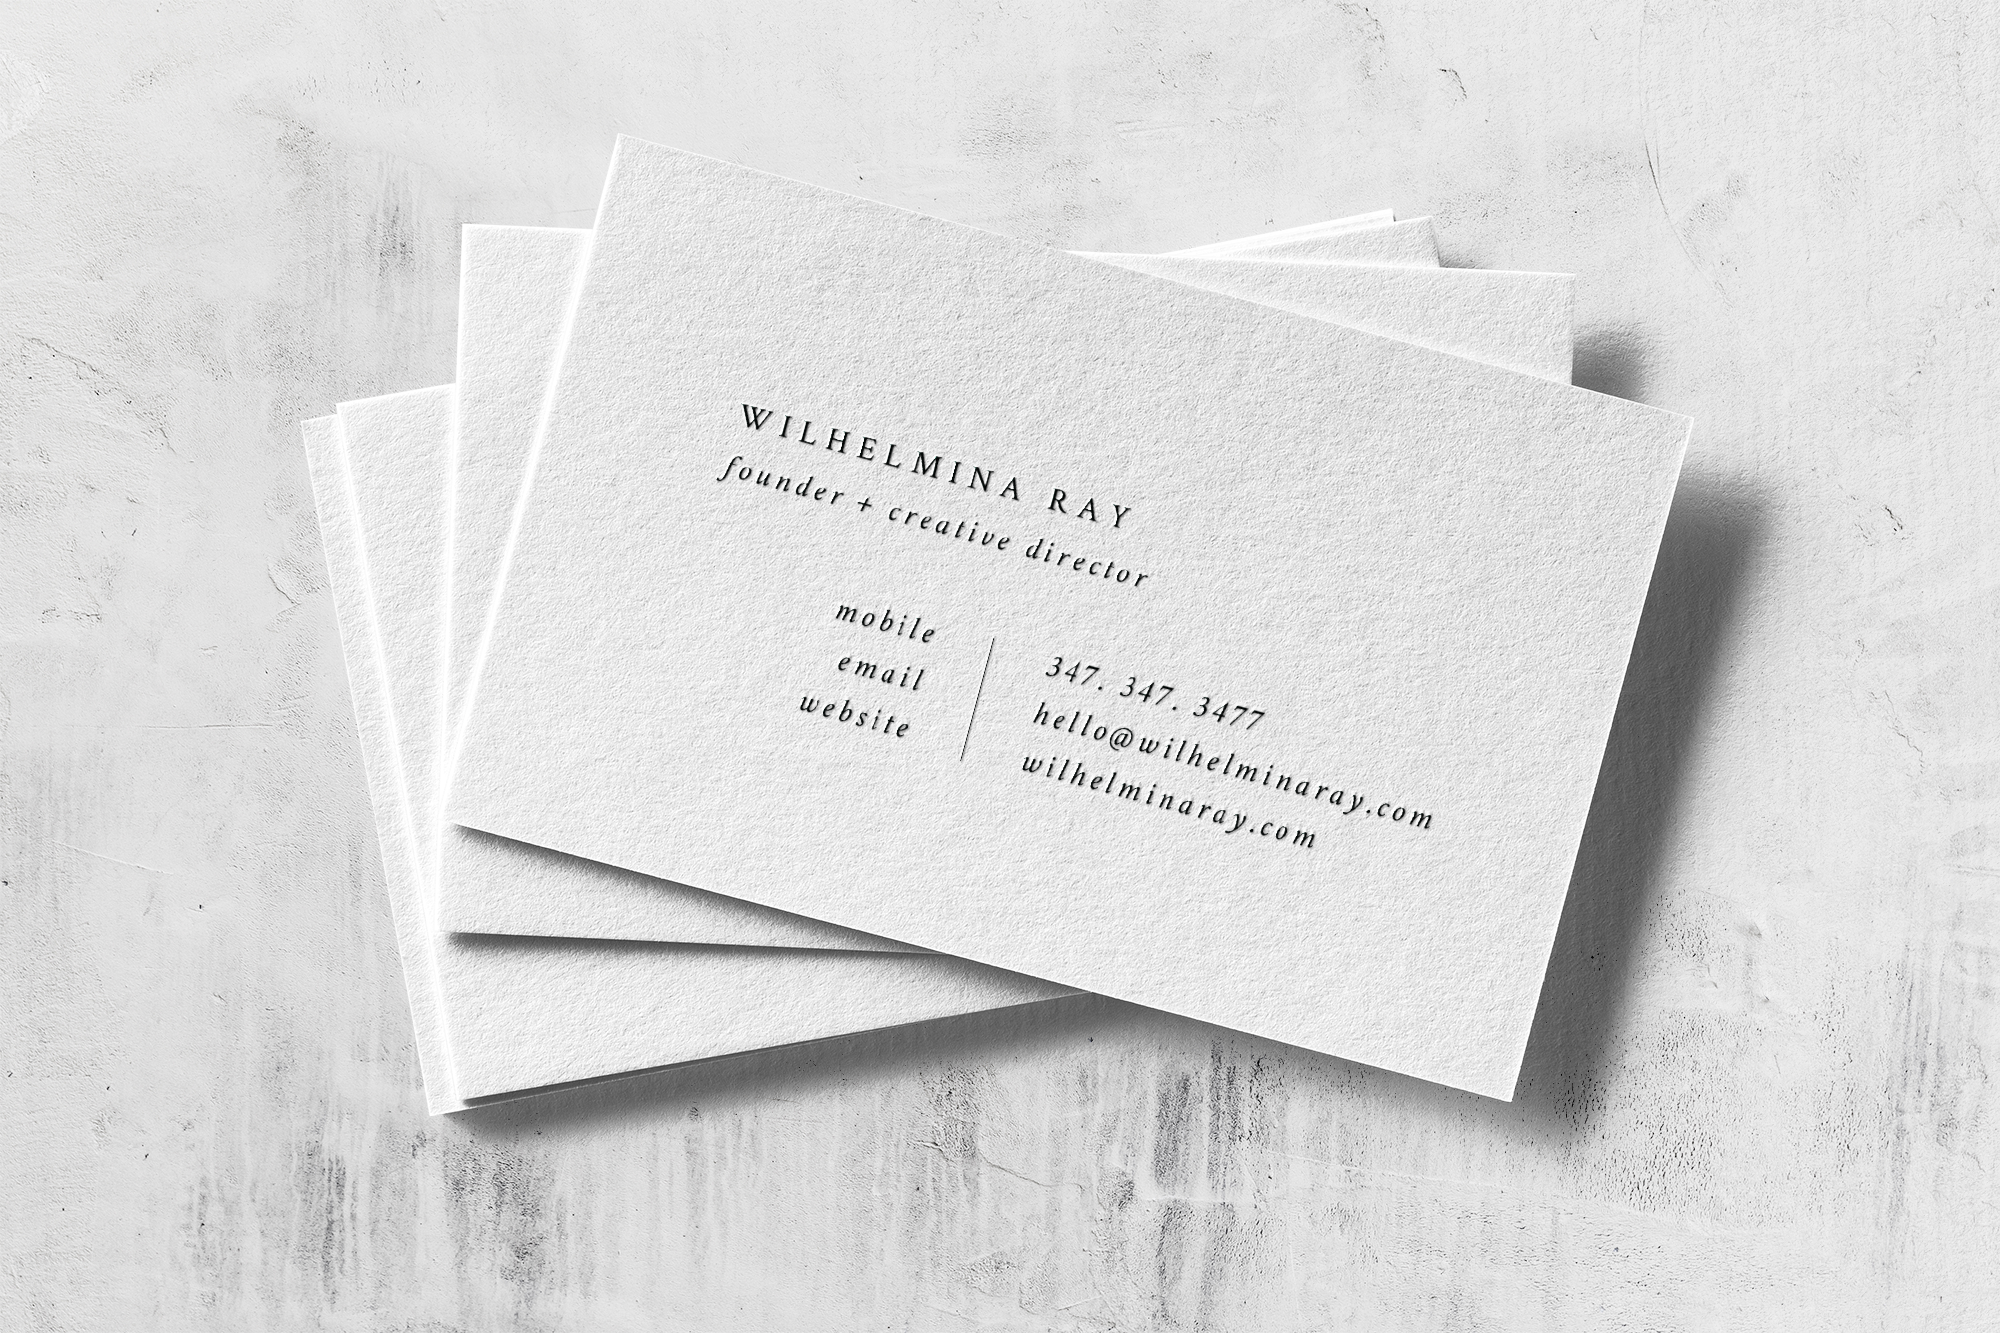 Information Cards Template from images.squarespace-cdn.com